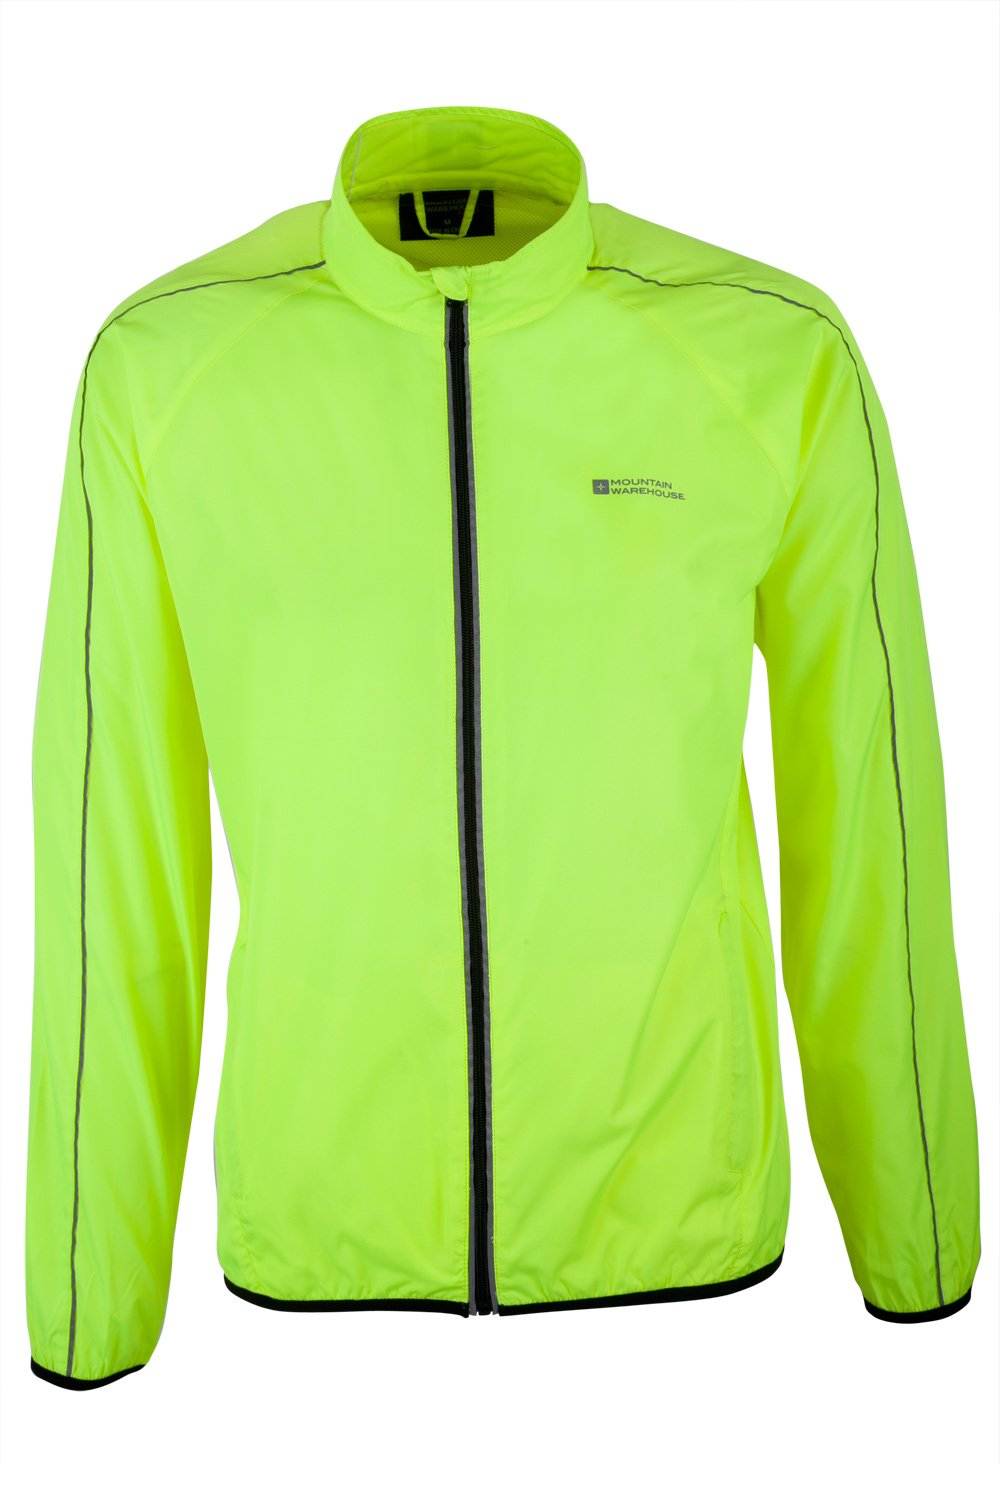 Mountain Warehouse Force Mens Reflective Water-Resistant Running Jacket